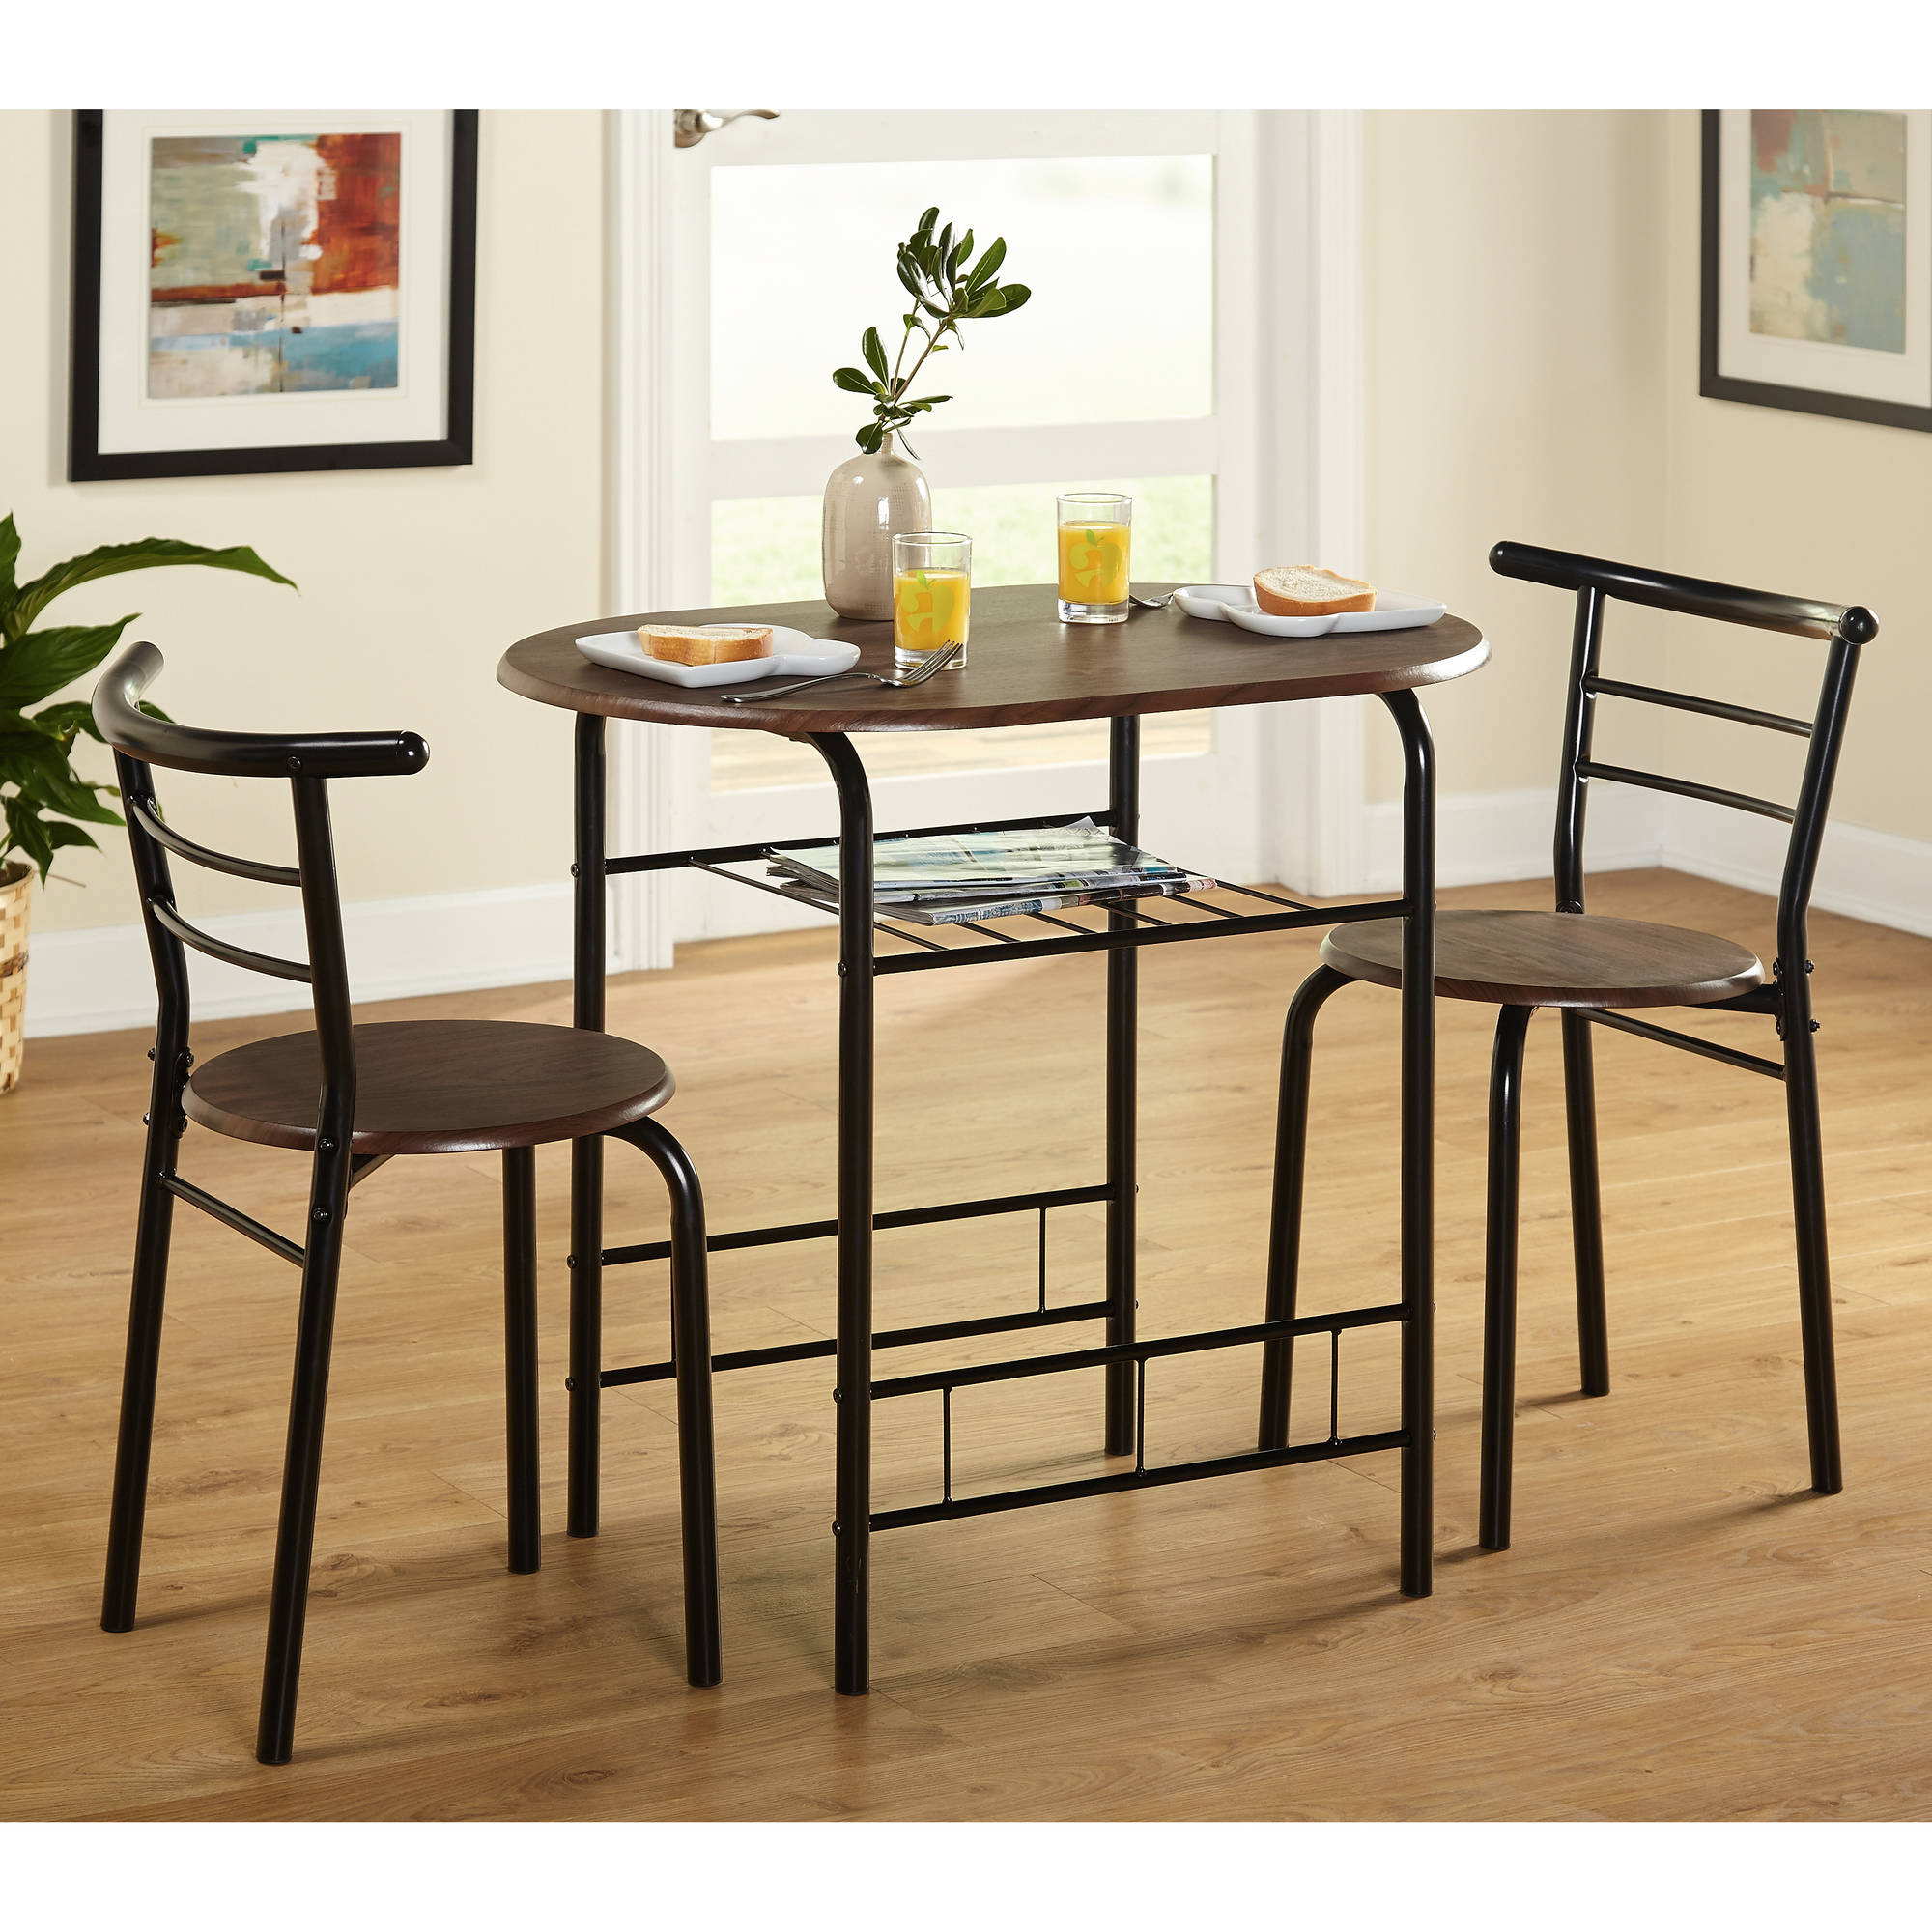 Tms 3 Piece Bistro Dining Set Throughout Most Recent 5 Piece Breakfast Nook Dining Sets (Photo 20 of 20)